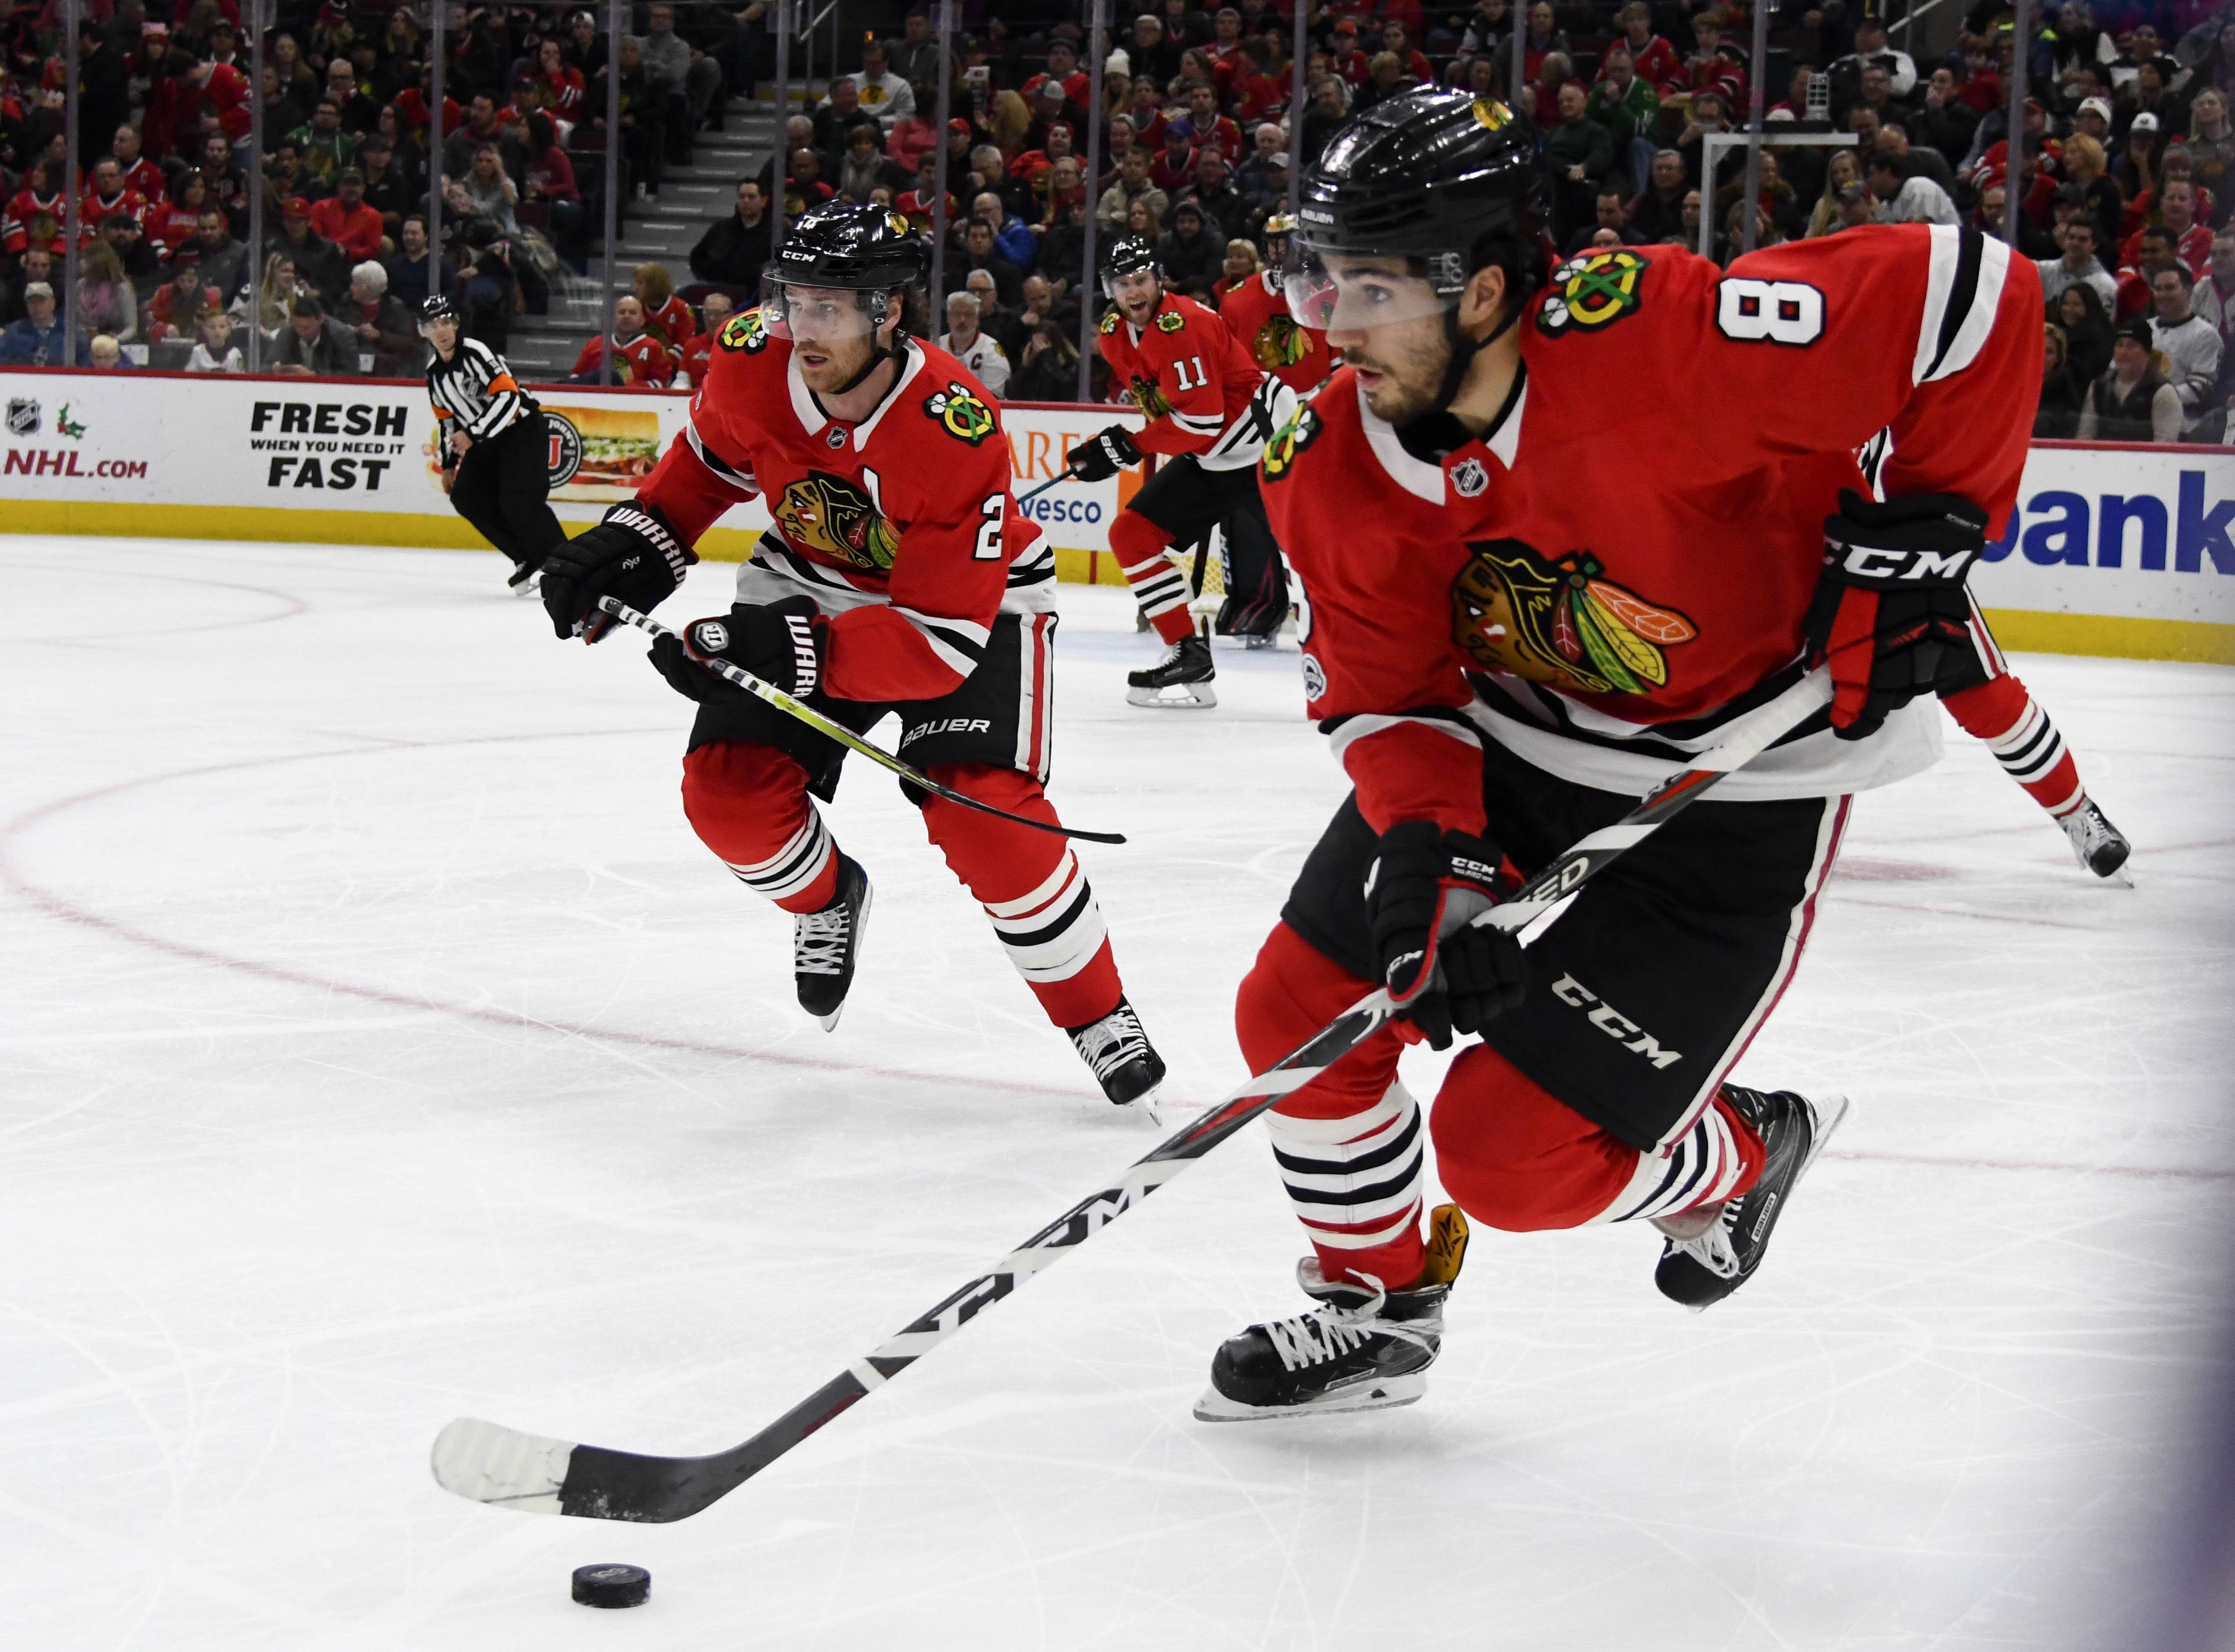 Chicago Blackhawks center Nick Schmaltz (8) advances the puck as Duncan Keith (2) looks on against the Buffalo Sabres during the first period of an NHL hockey game Friday Dec. 8, 2017, in Chicago. (AP Photo/Matt Marton)